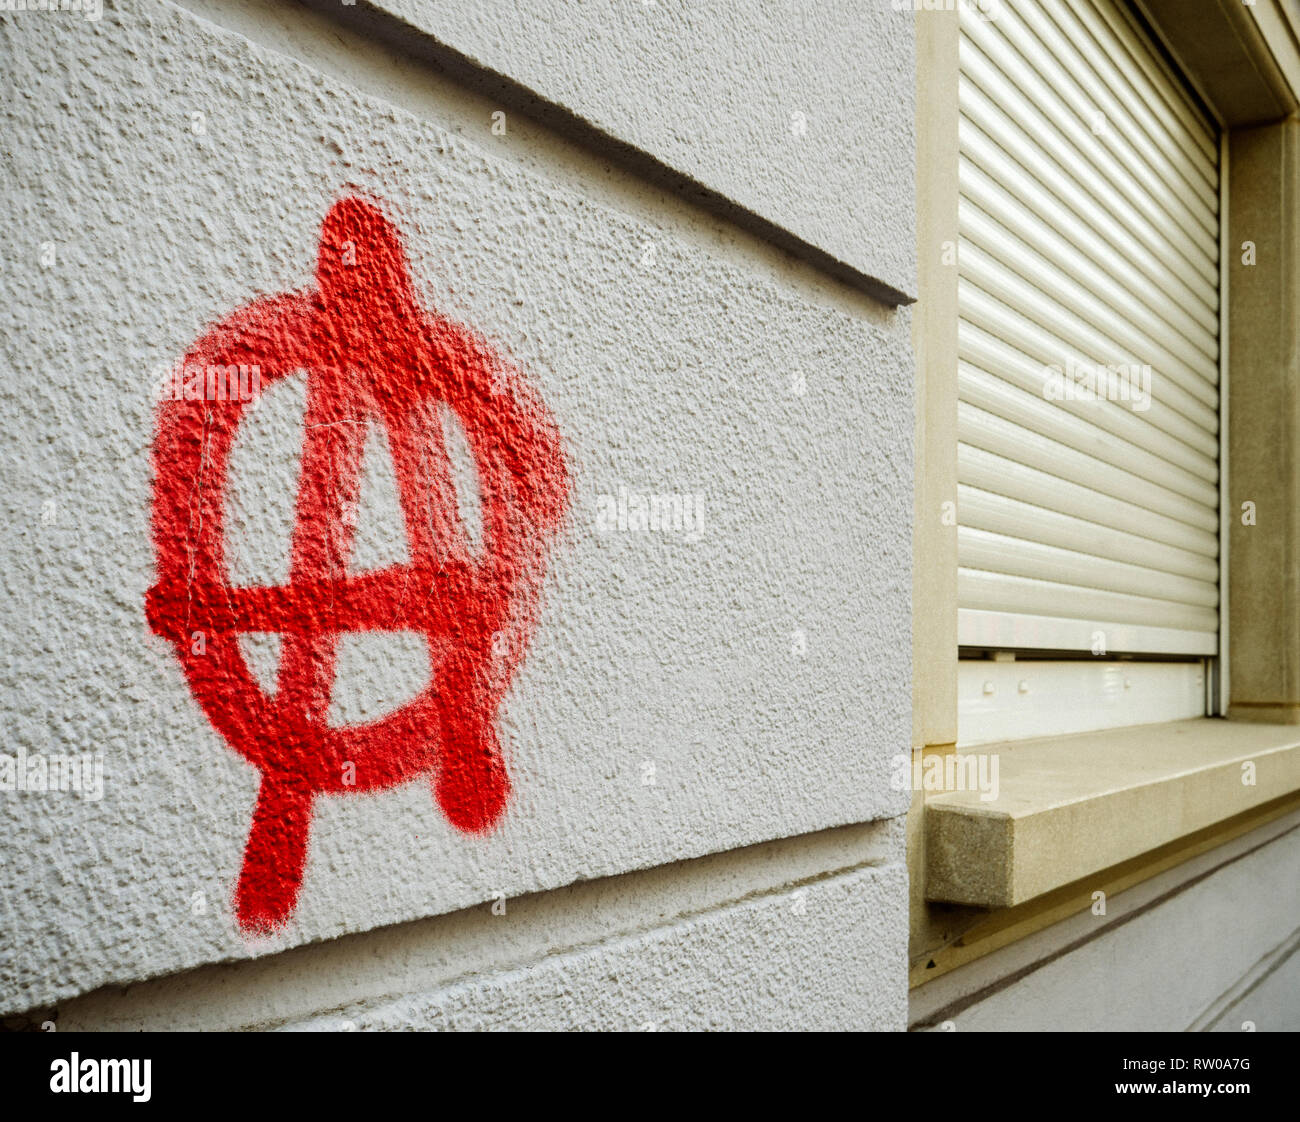 Anarchy graffiti on wall painted with red paint - Stock Image